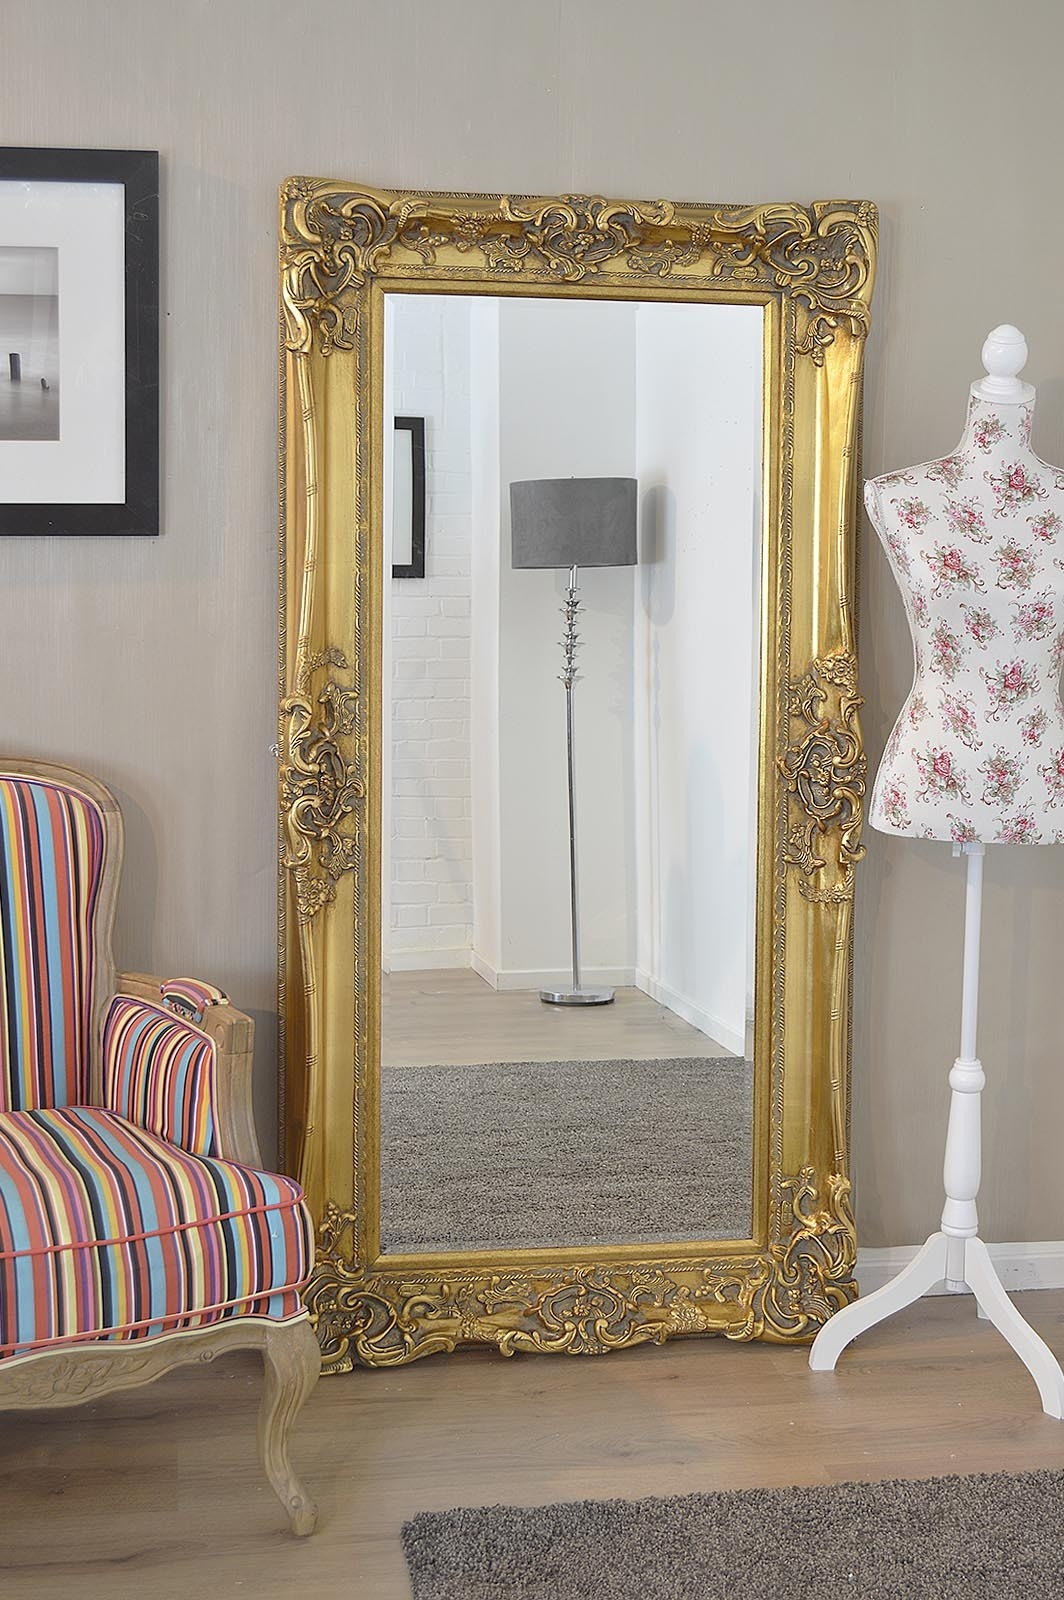 Ornate Full Length Wall Mirror Mirror Design Ideas Pertaining To Large Ornate Mirrors For Wall (Image 12 of 15)